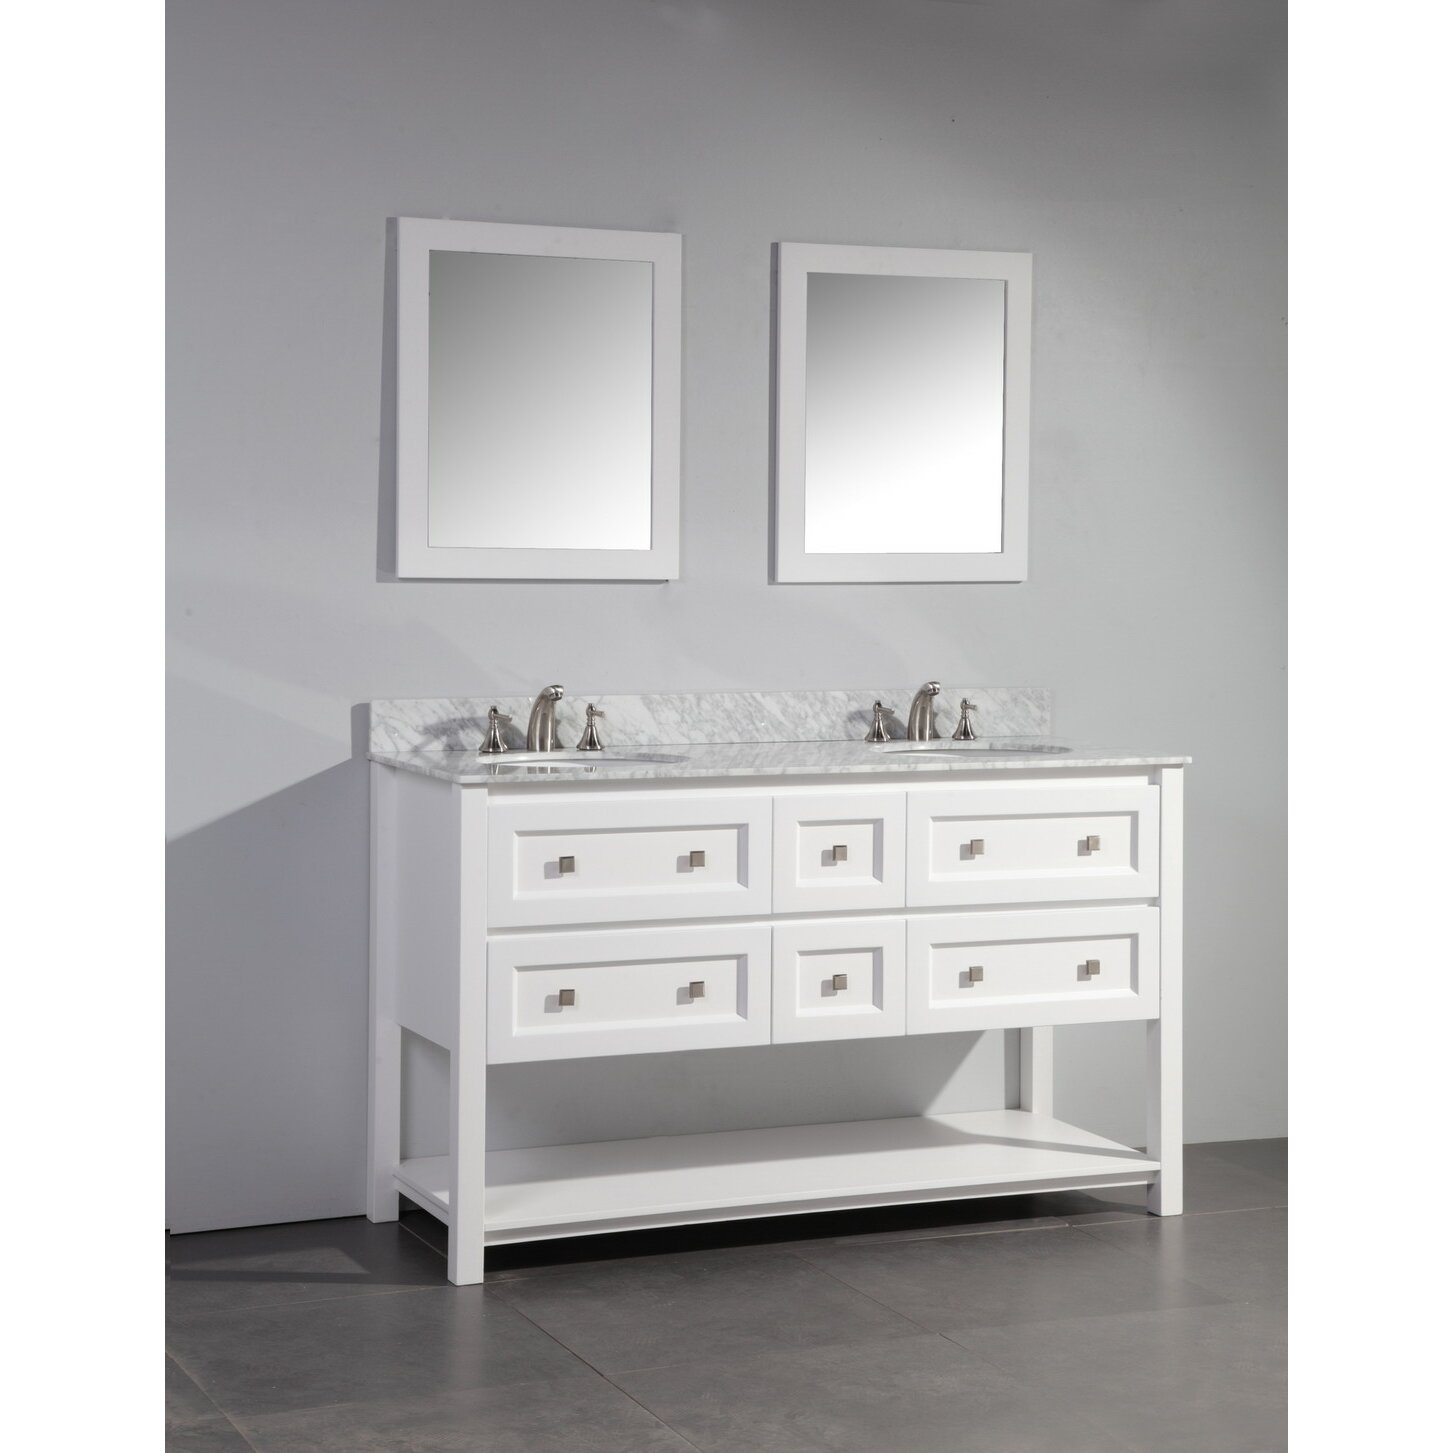 Dcor Design Albia 60 Double Sink Bathroom Vanity Set With Mirror Reviews Wayfair